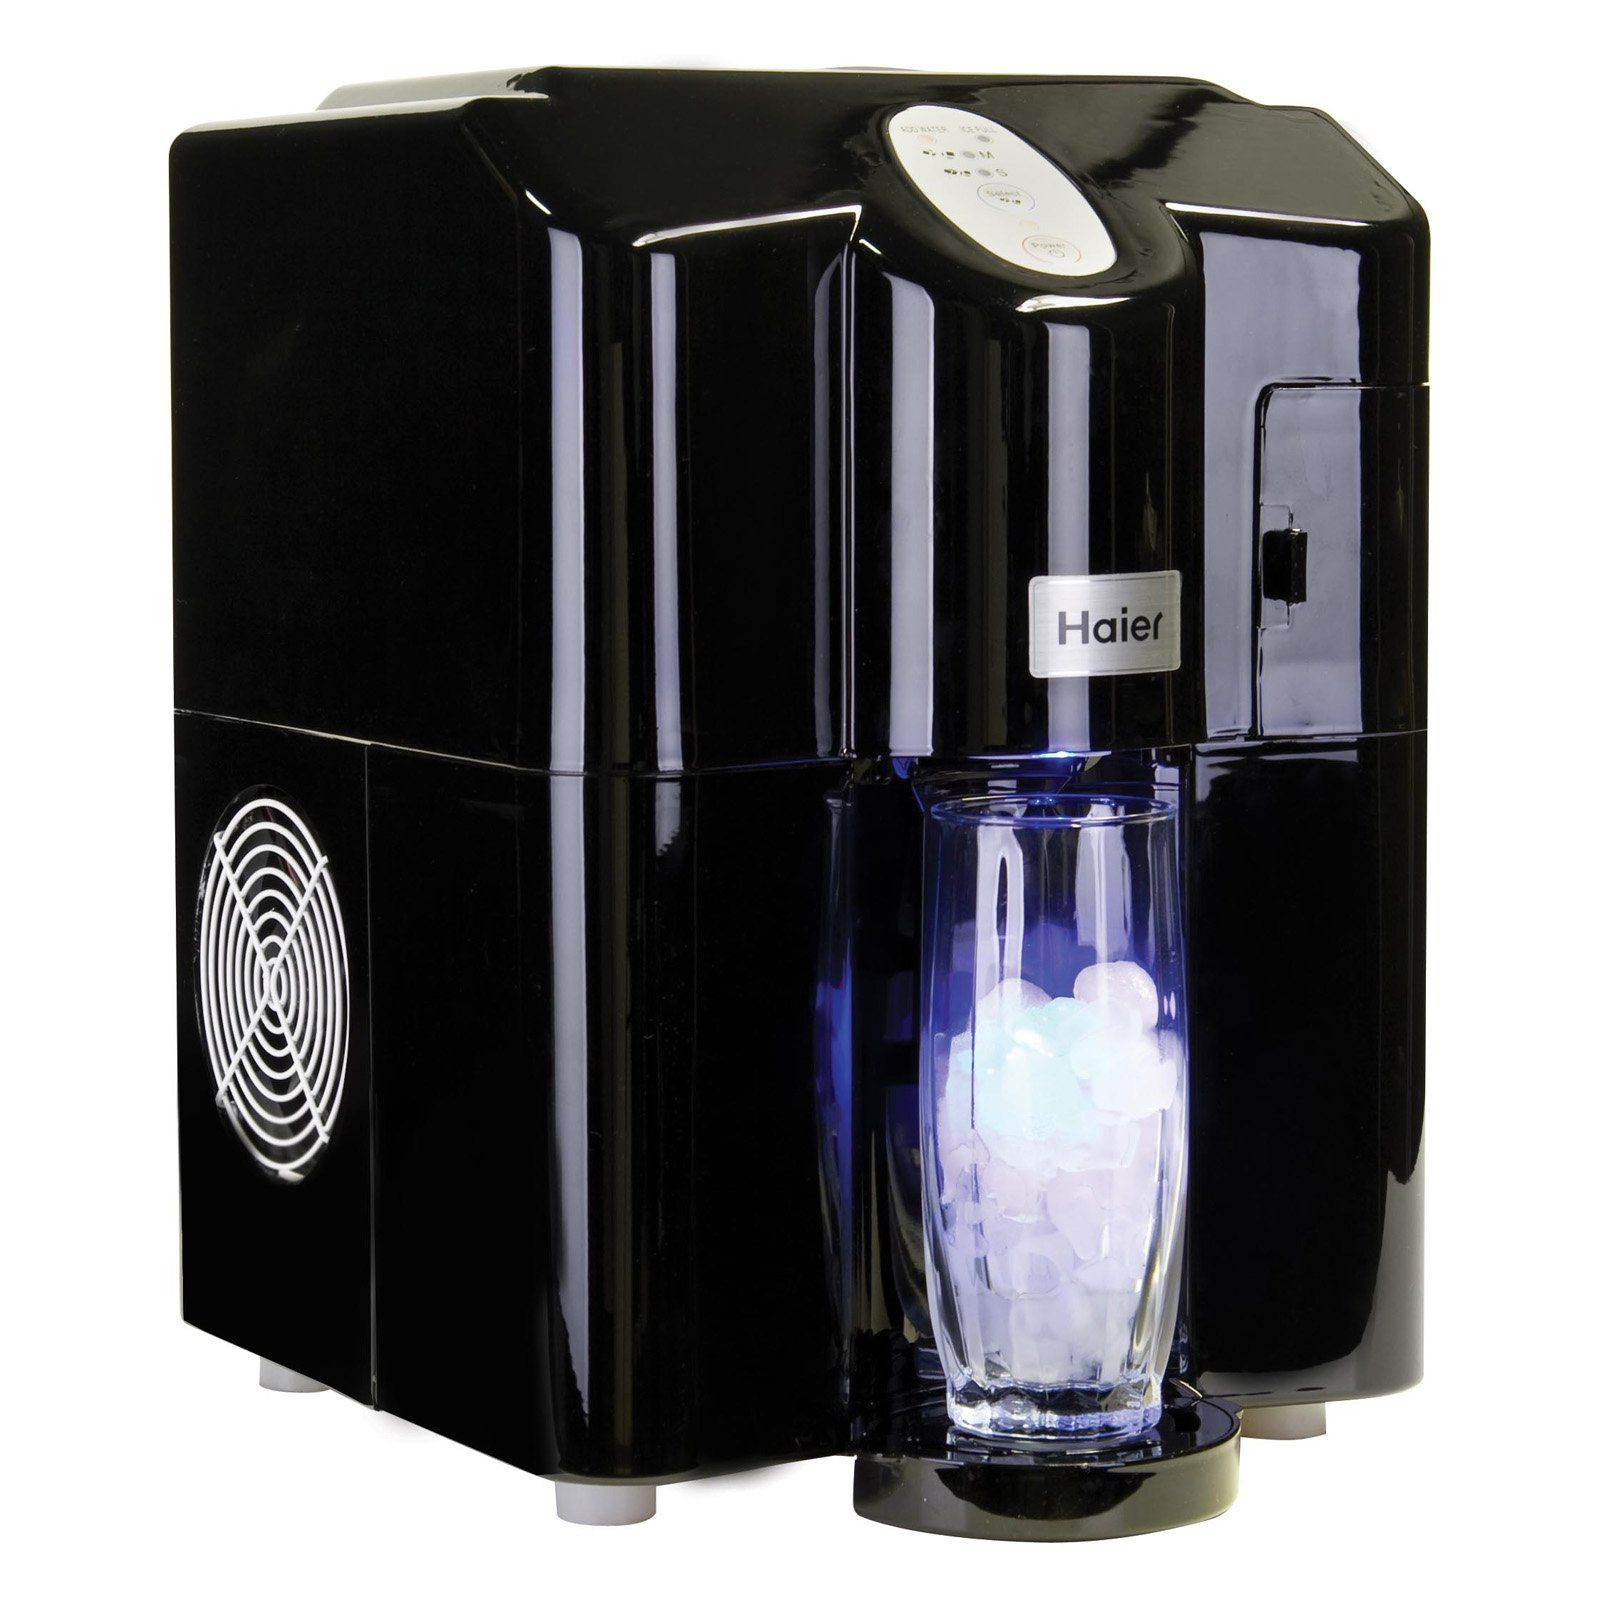 Have To Have It Haier Hpimd25b Portable Countertop Ice Maker Dispenser Black Cool Things To Buy Countertops